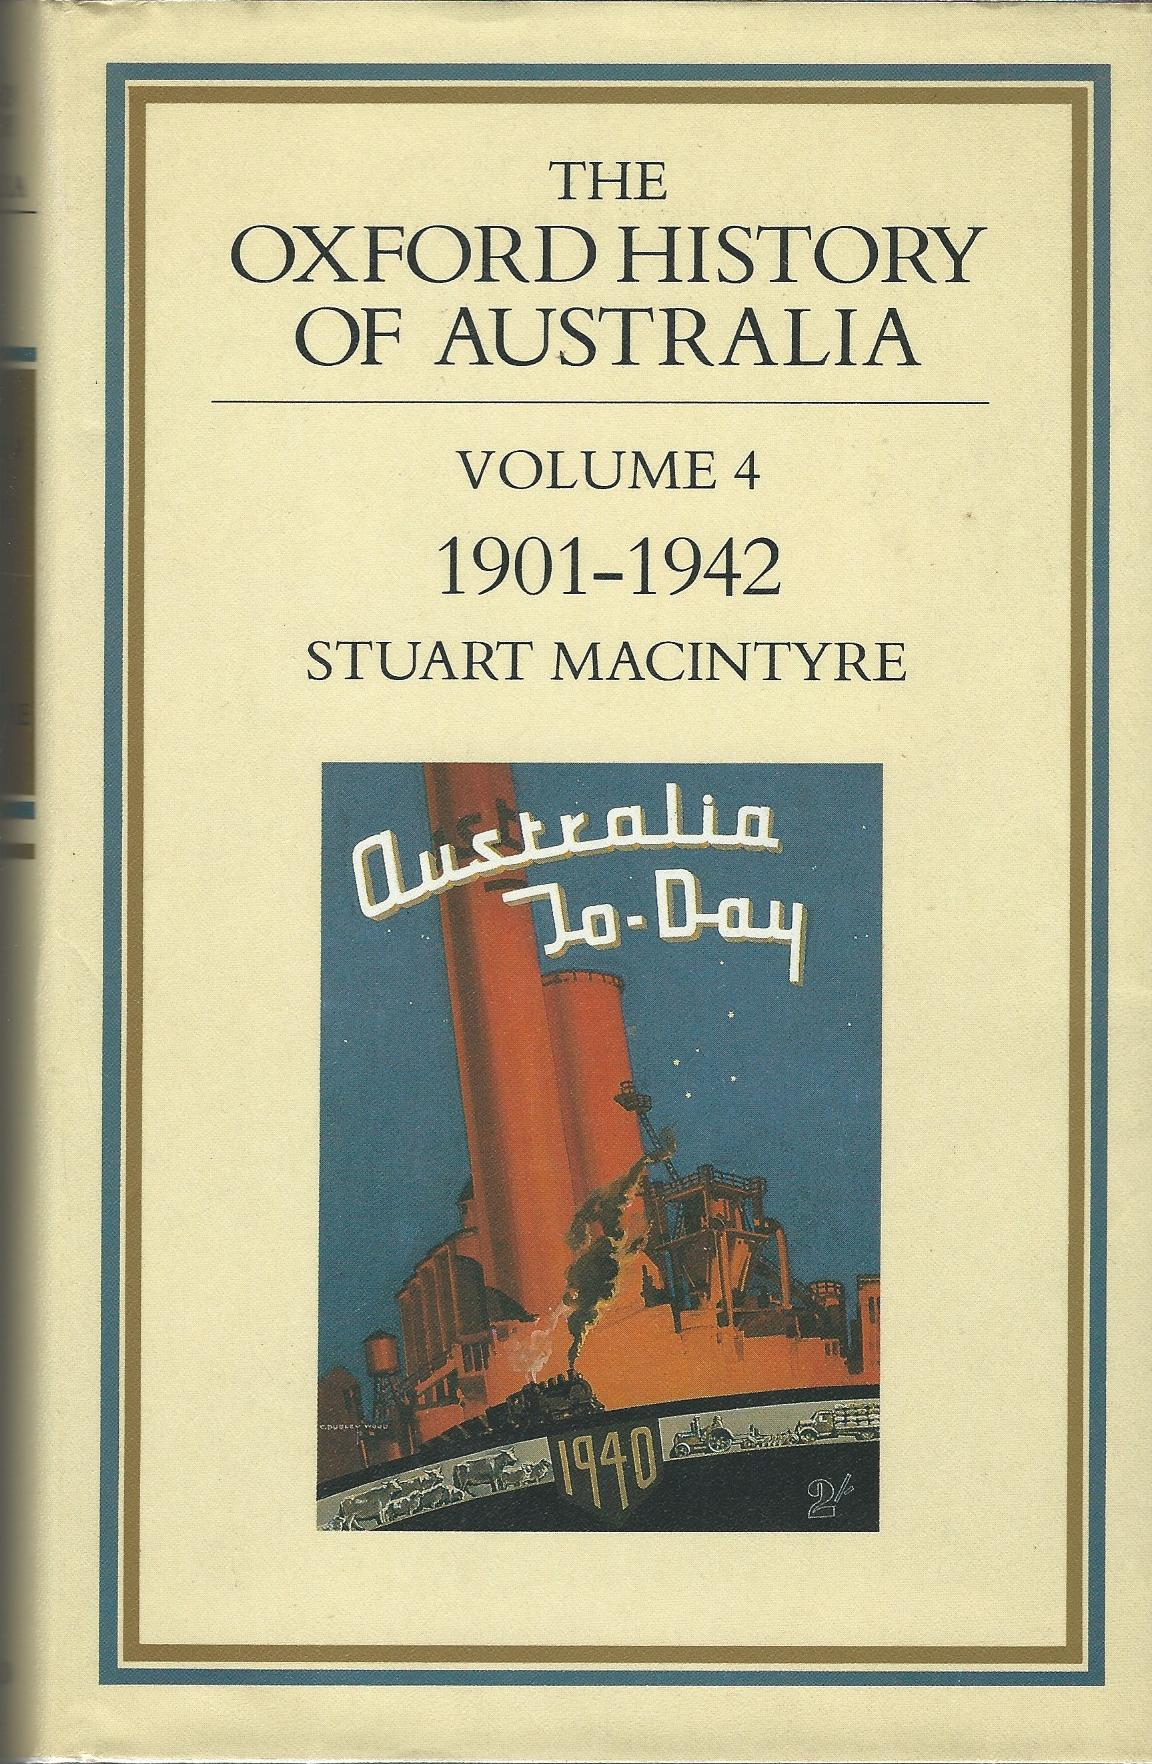 Image for The Oxford History of Australia: Volume 4 - 1901-42 - The Succeeding Age